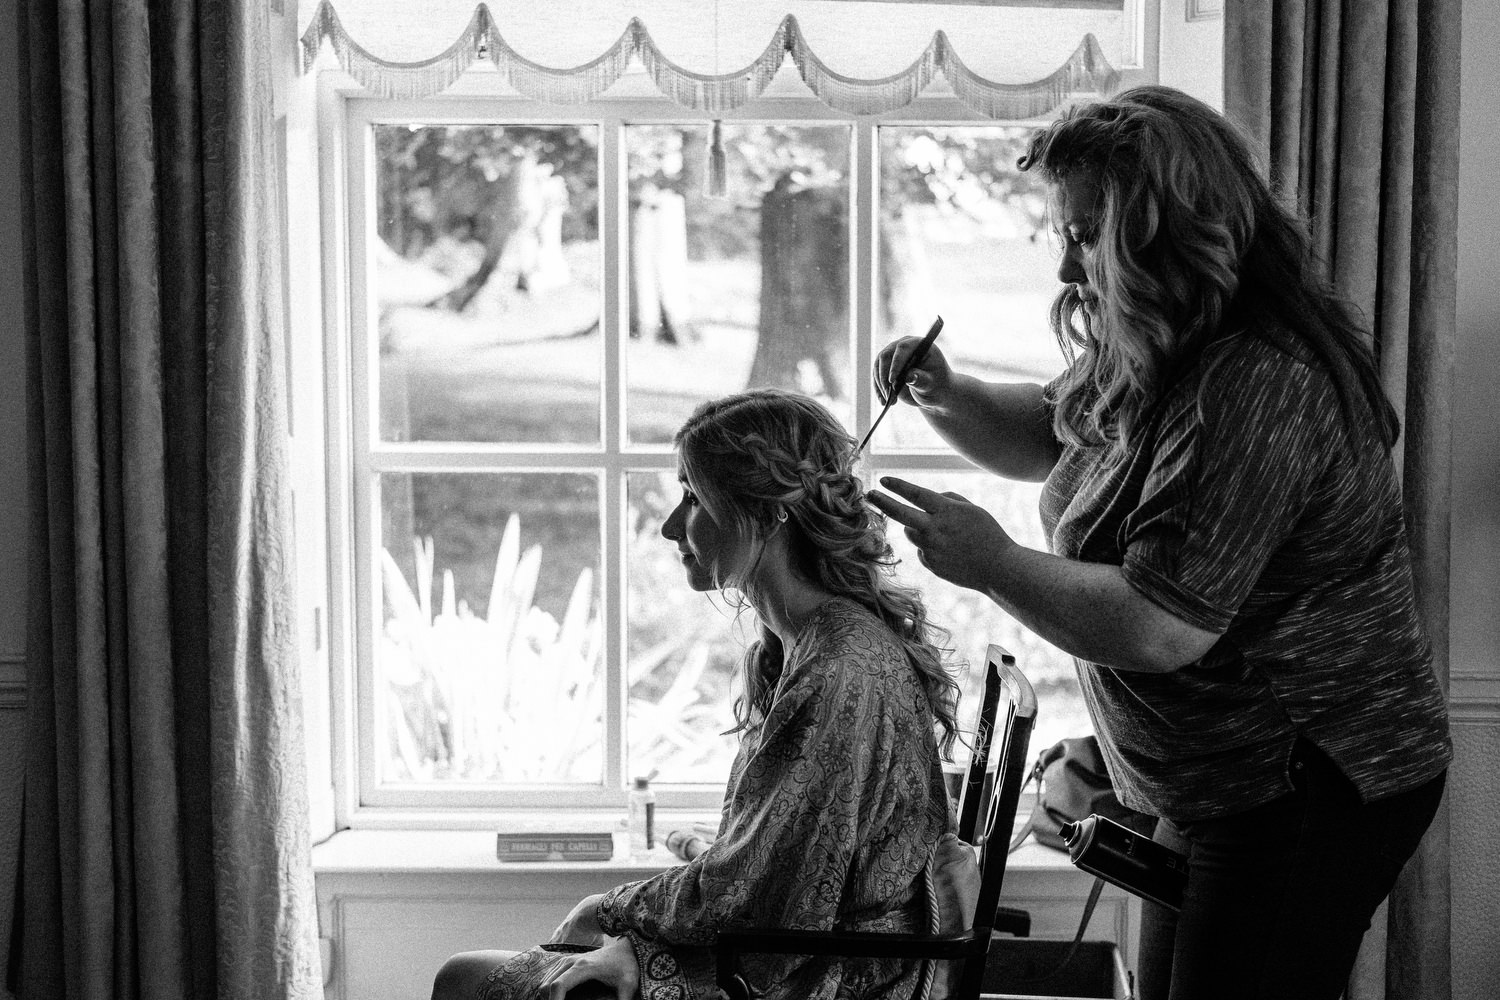 000000000000000000000032_bride_style_preparation_vintage_Hair_dress_photography_david_mcclelland_ireland_makeup_castle_hollywood_kinnity_wedding_photographer_fujifilm